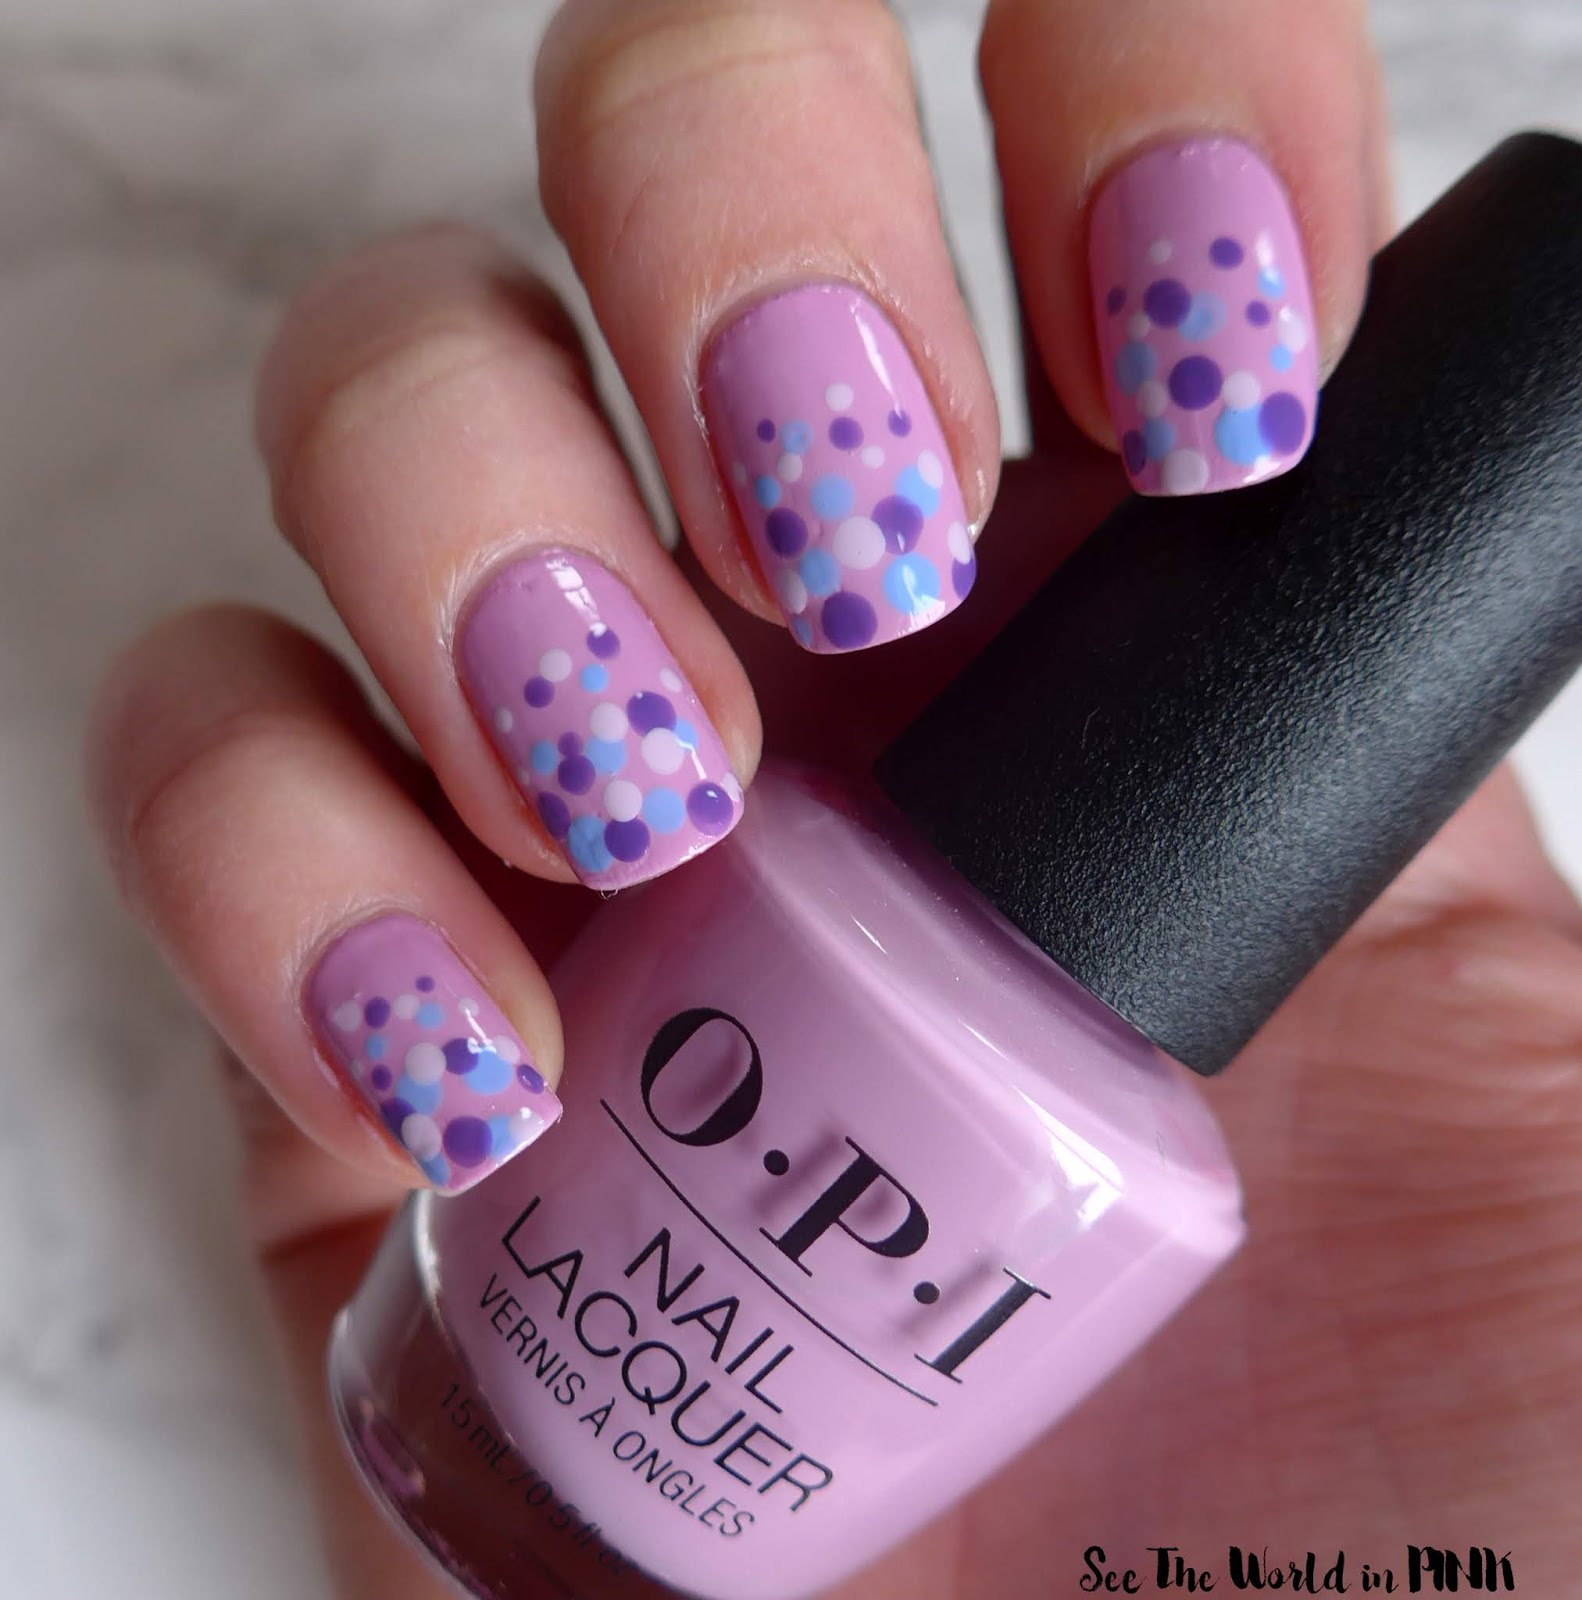 Manicure Monday - Easter Dotticure Nails